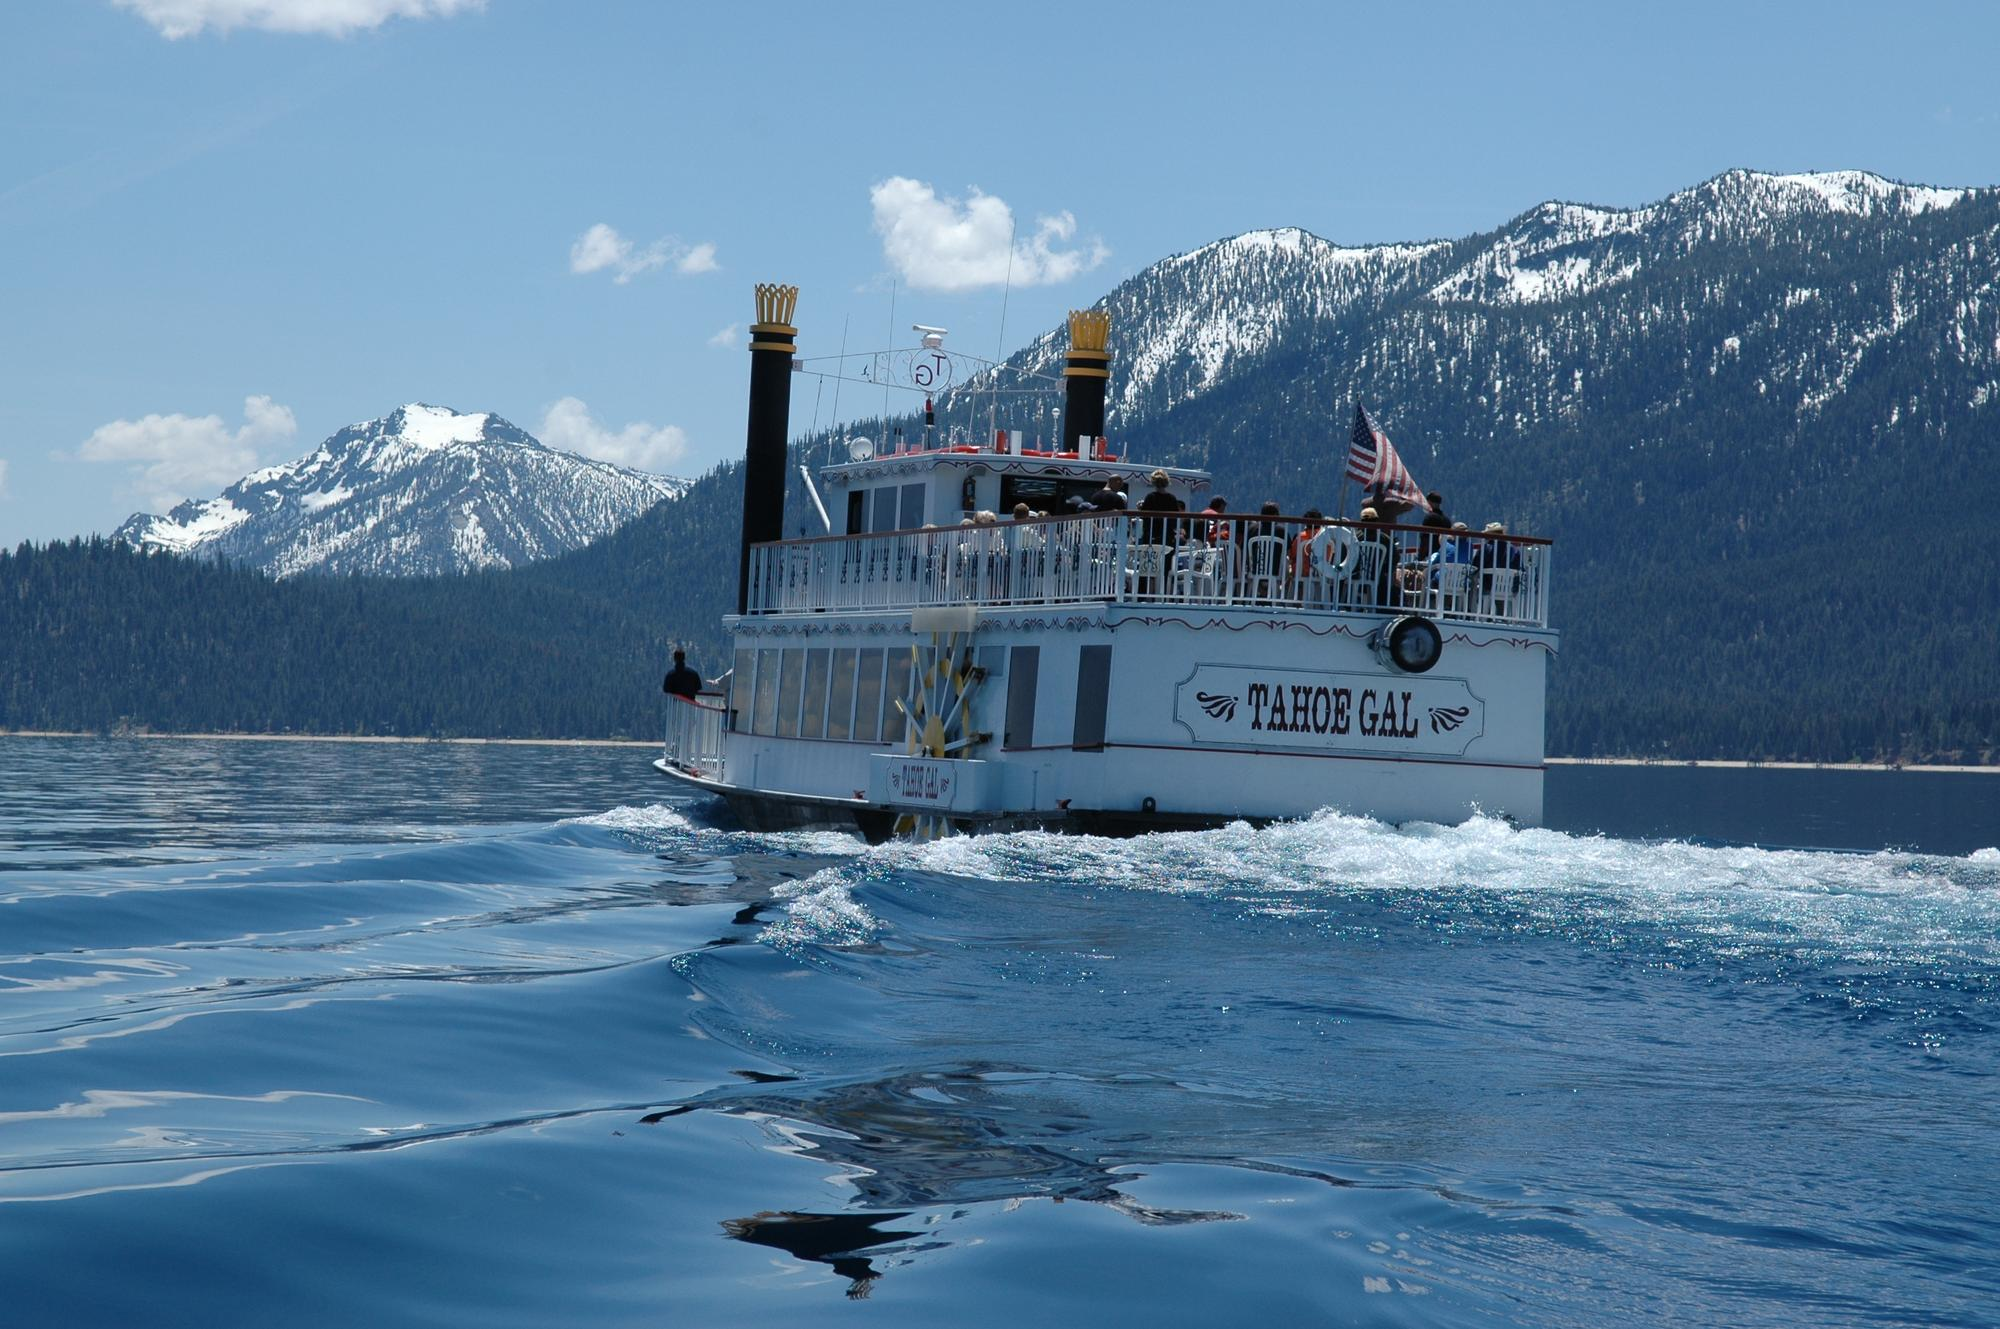 Tahoe City (CA) United States  city pictures gallery : ... Cruise